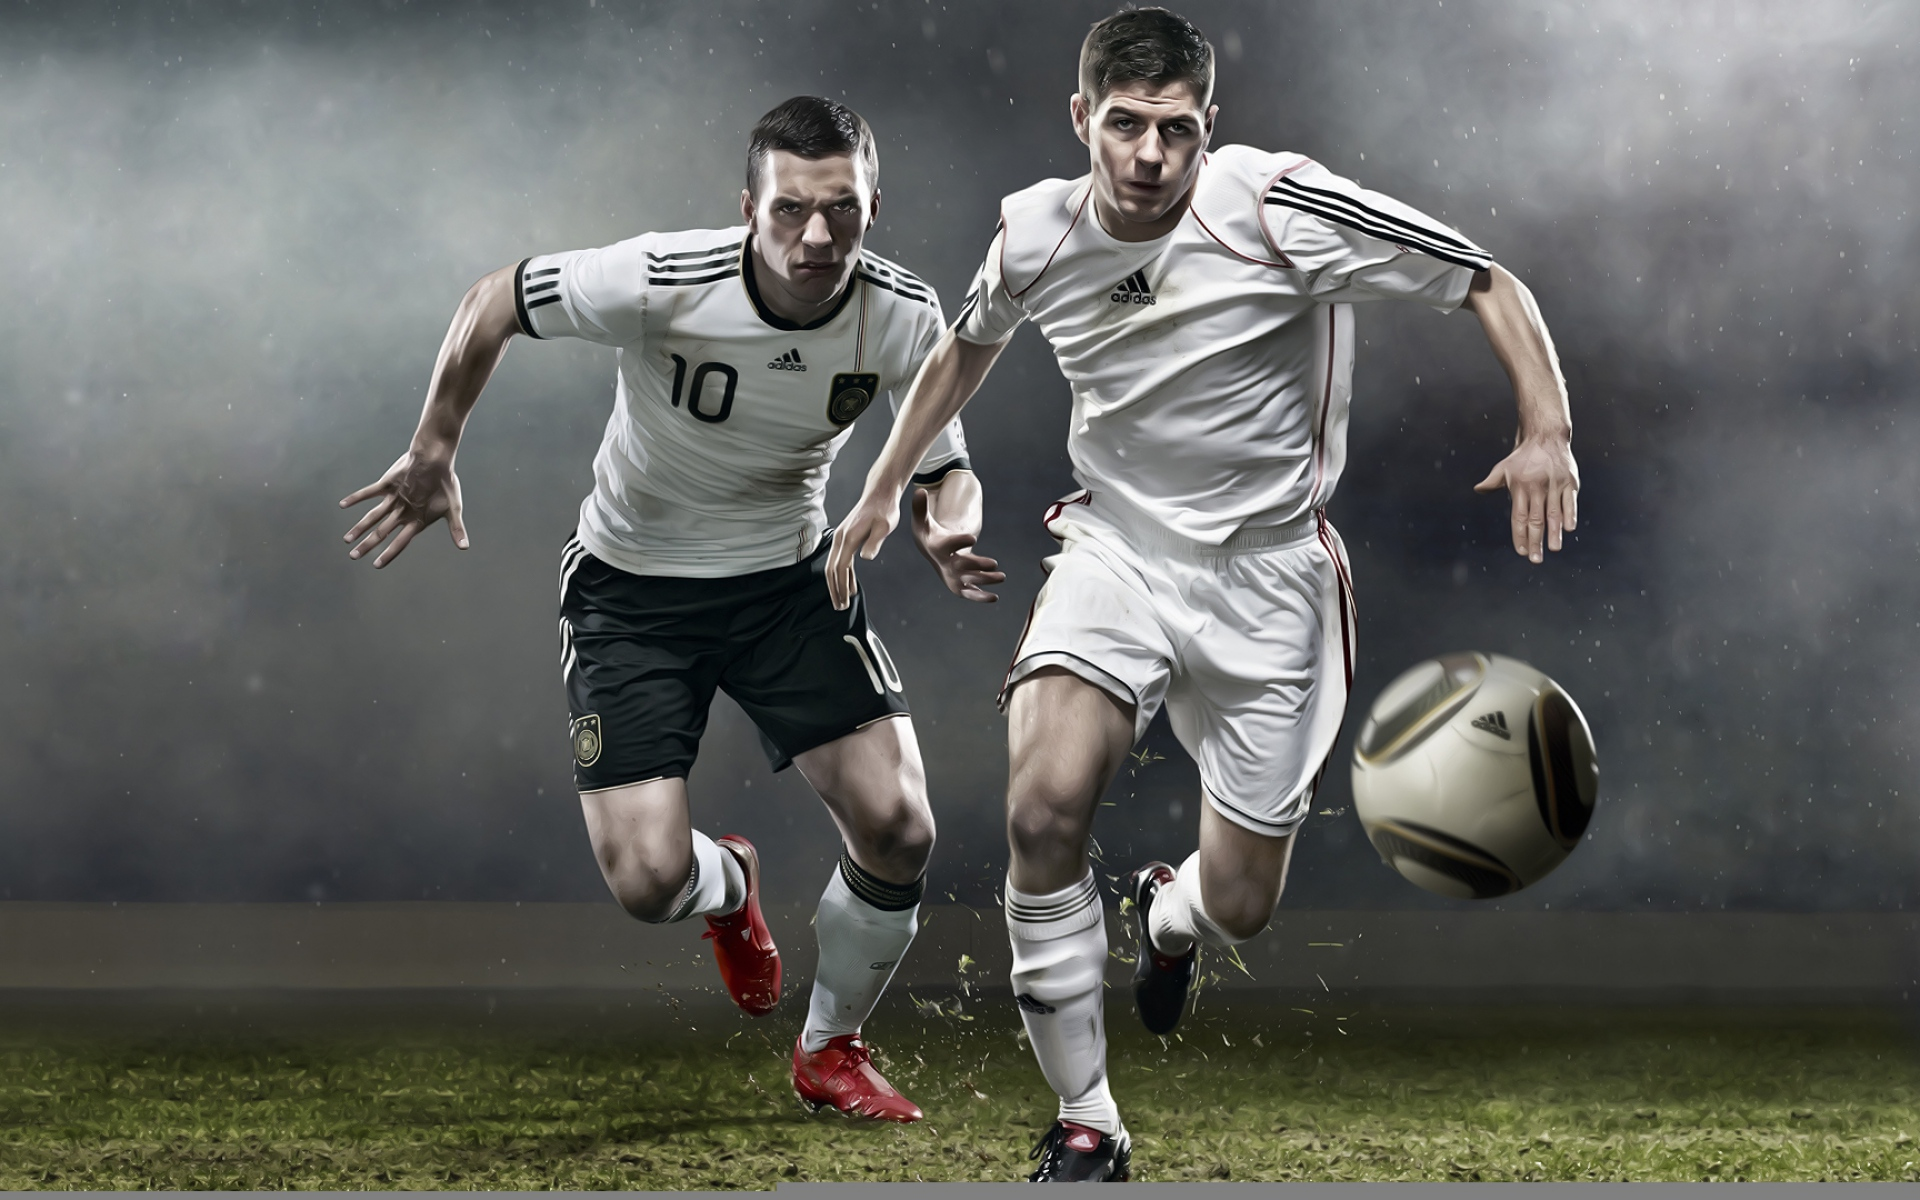 Soccer HD Wallpaper Background